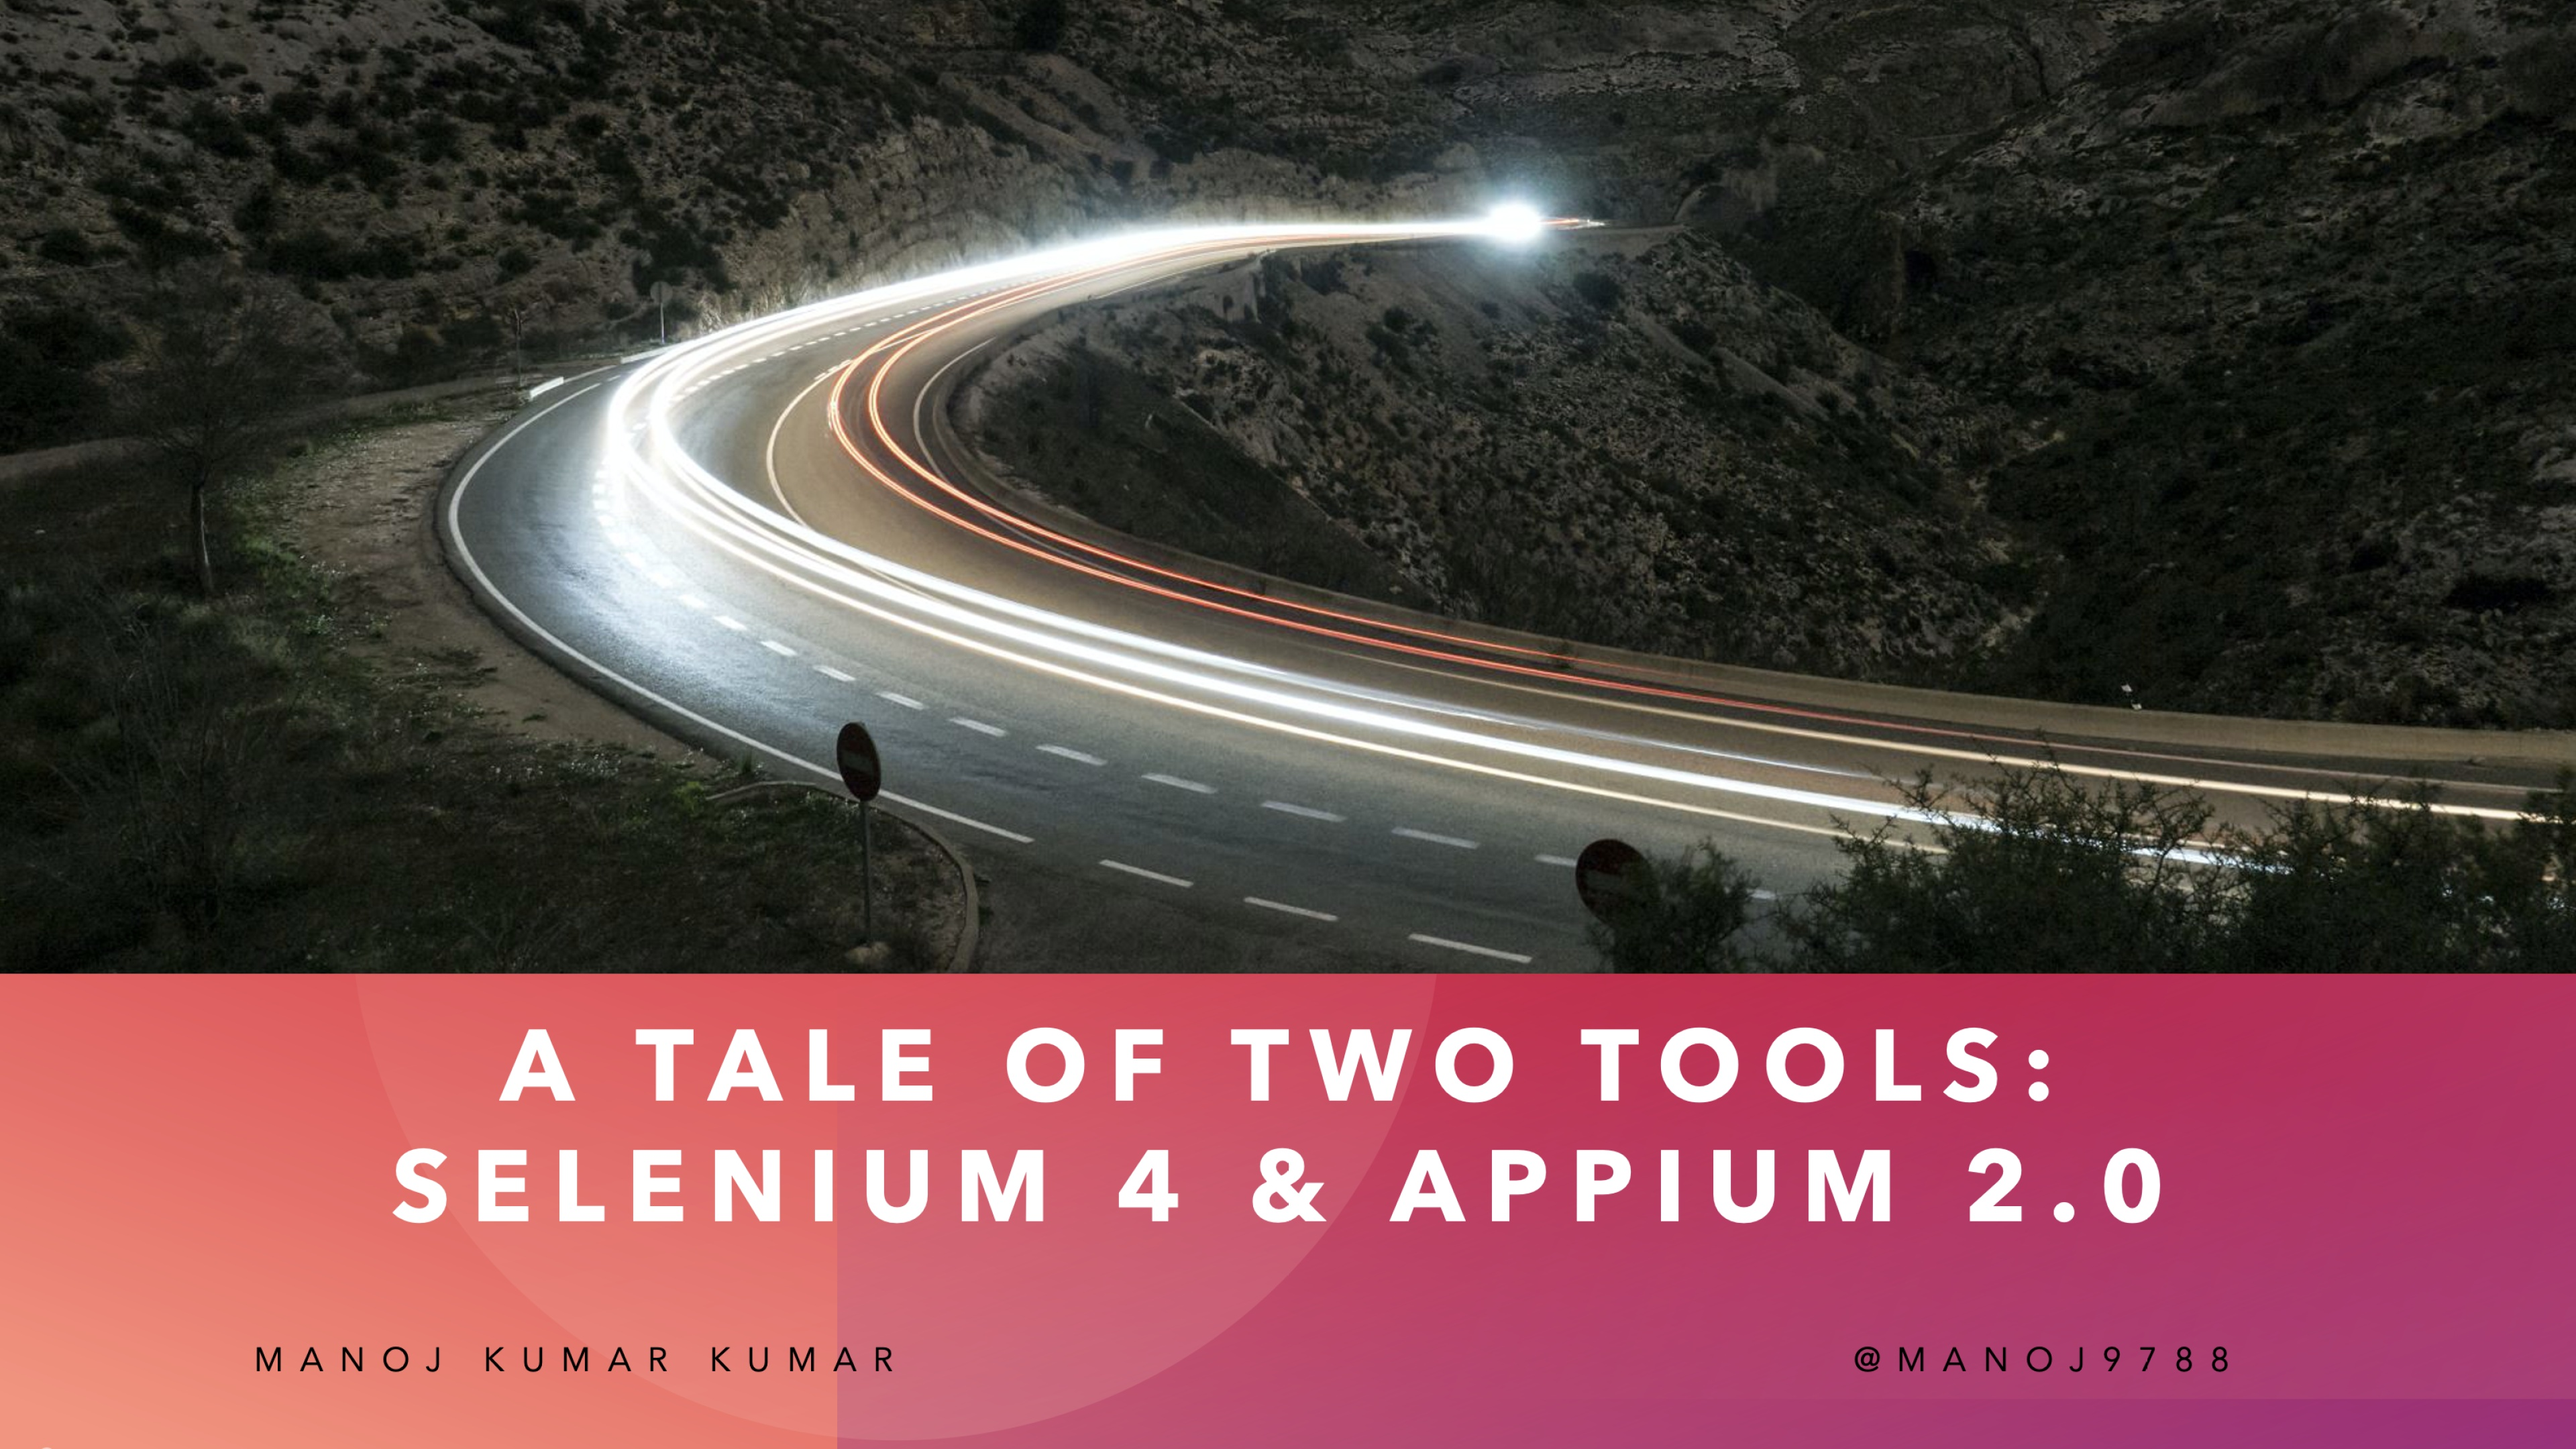 A Tale of Two Tools: Selenium 4 and Appium 2.0 - Manoj Kumar